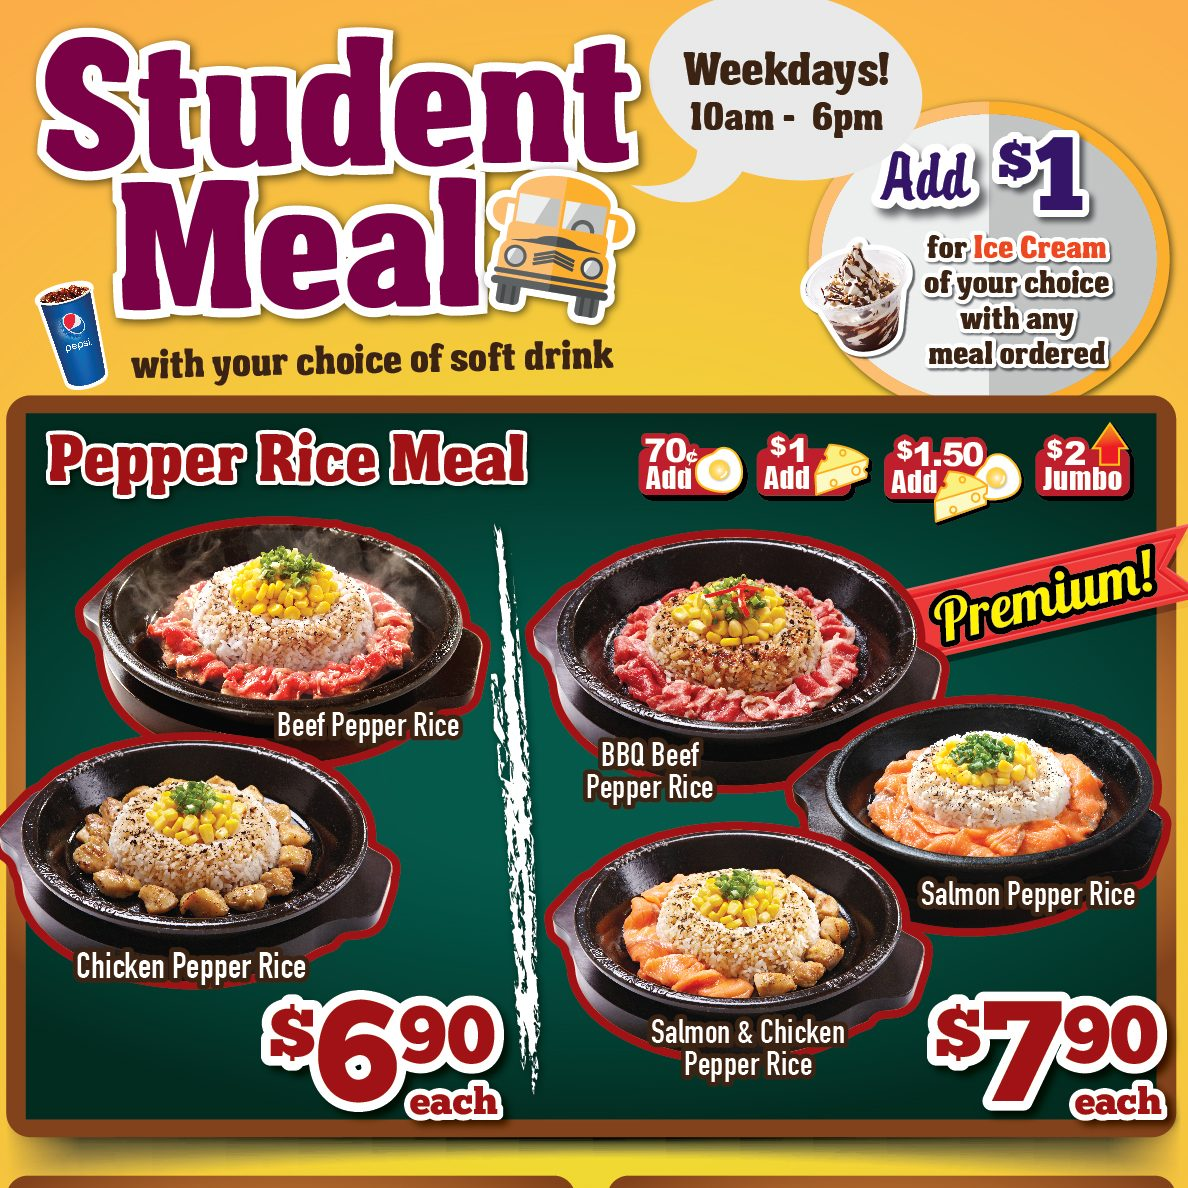 Pepper Lunch Student Meal from $6.90 only ends 30 Sep 2016